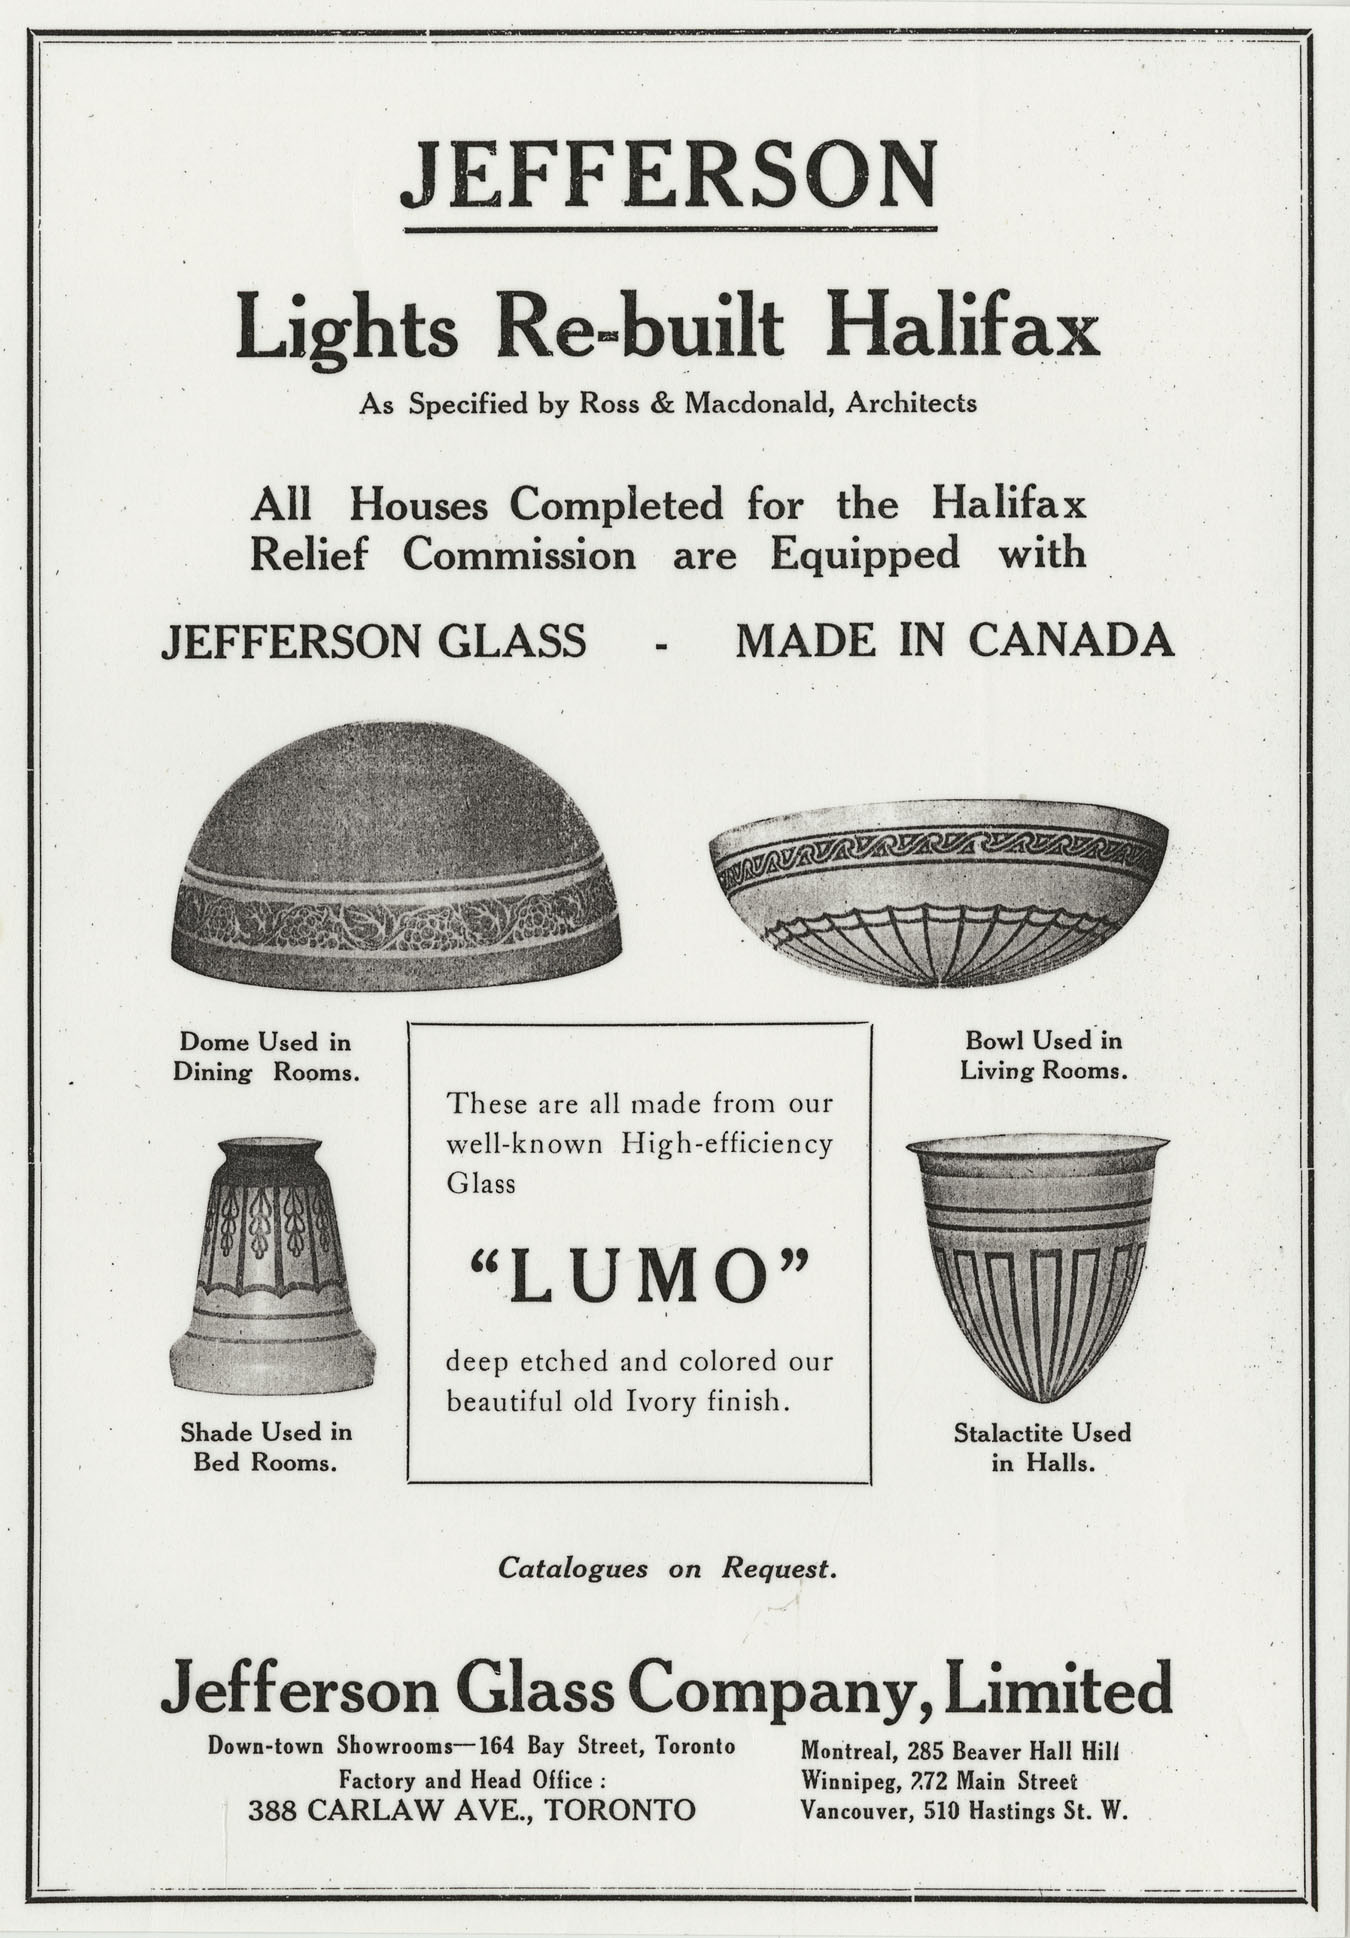 Advertisements by companies involved in the reconstruction